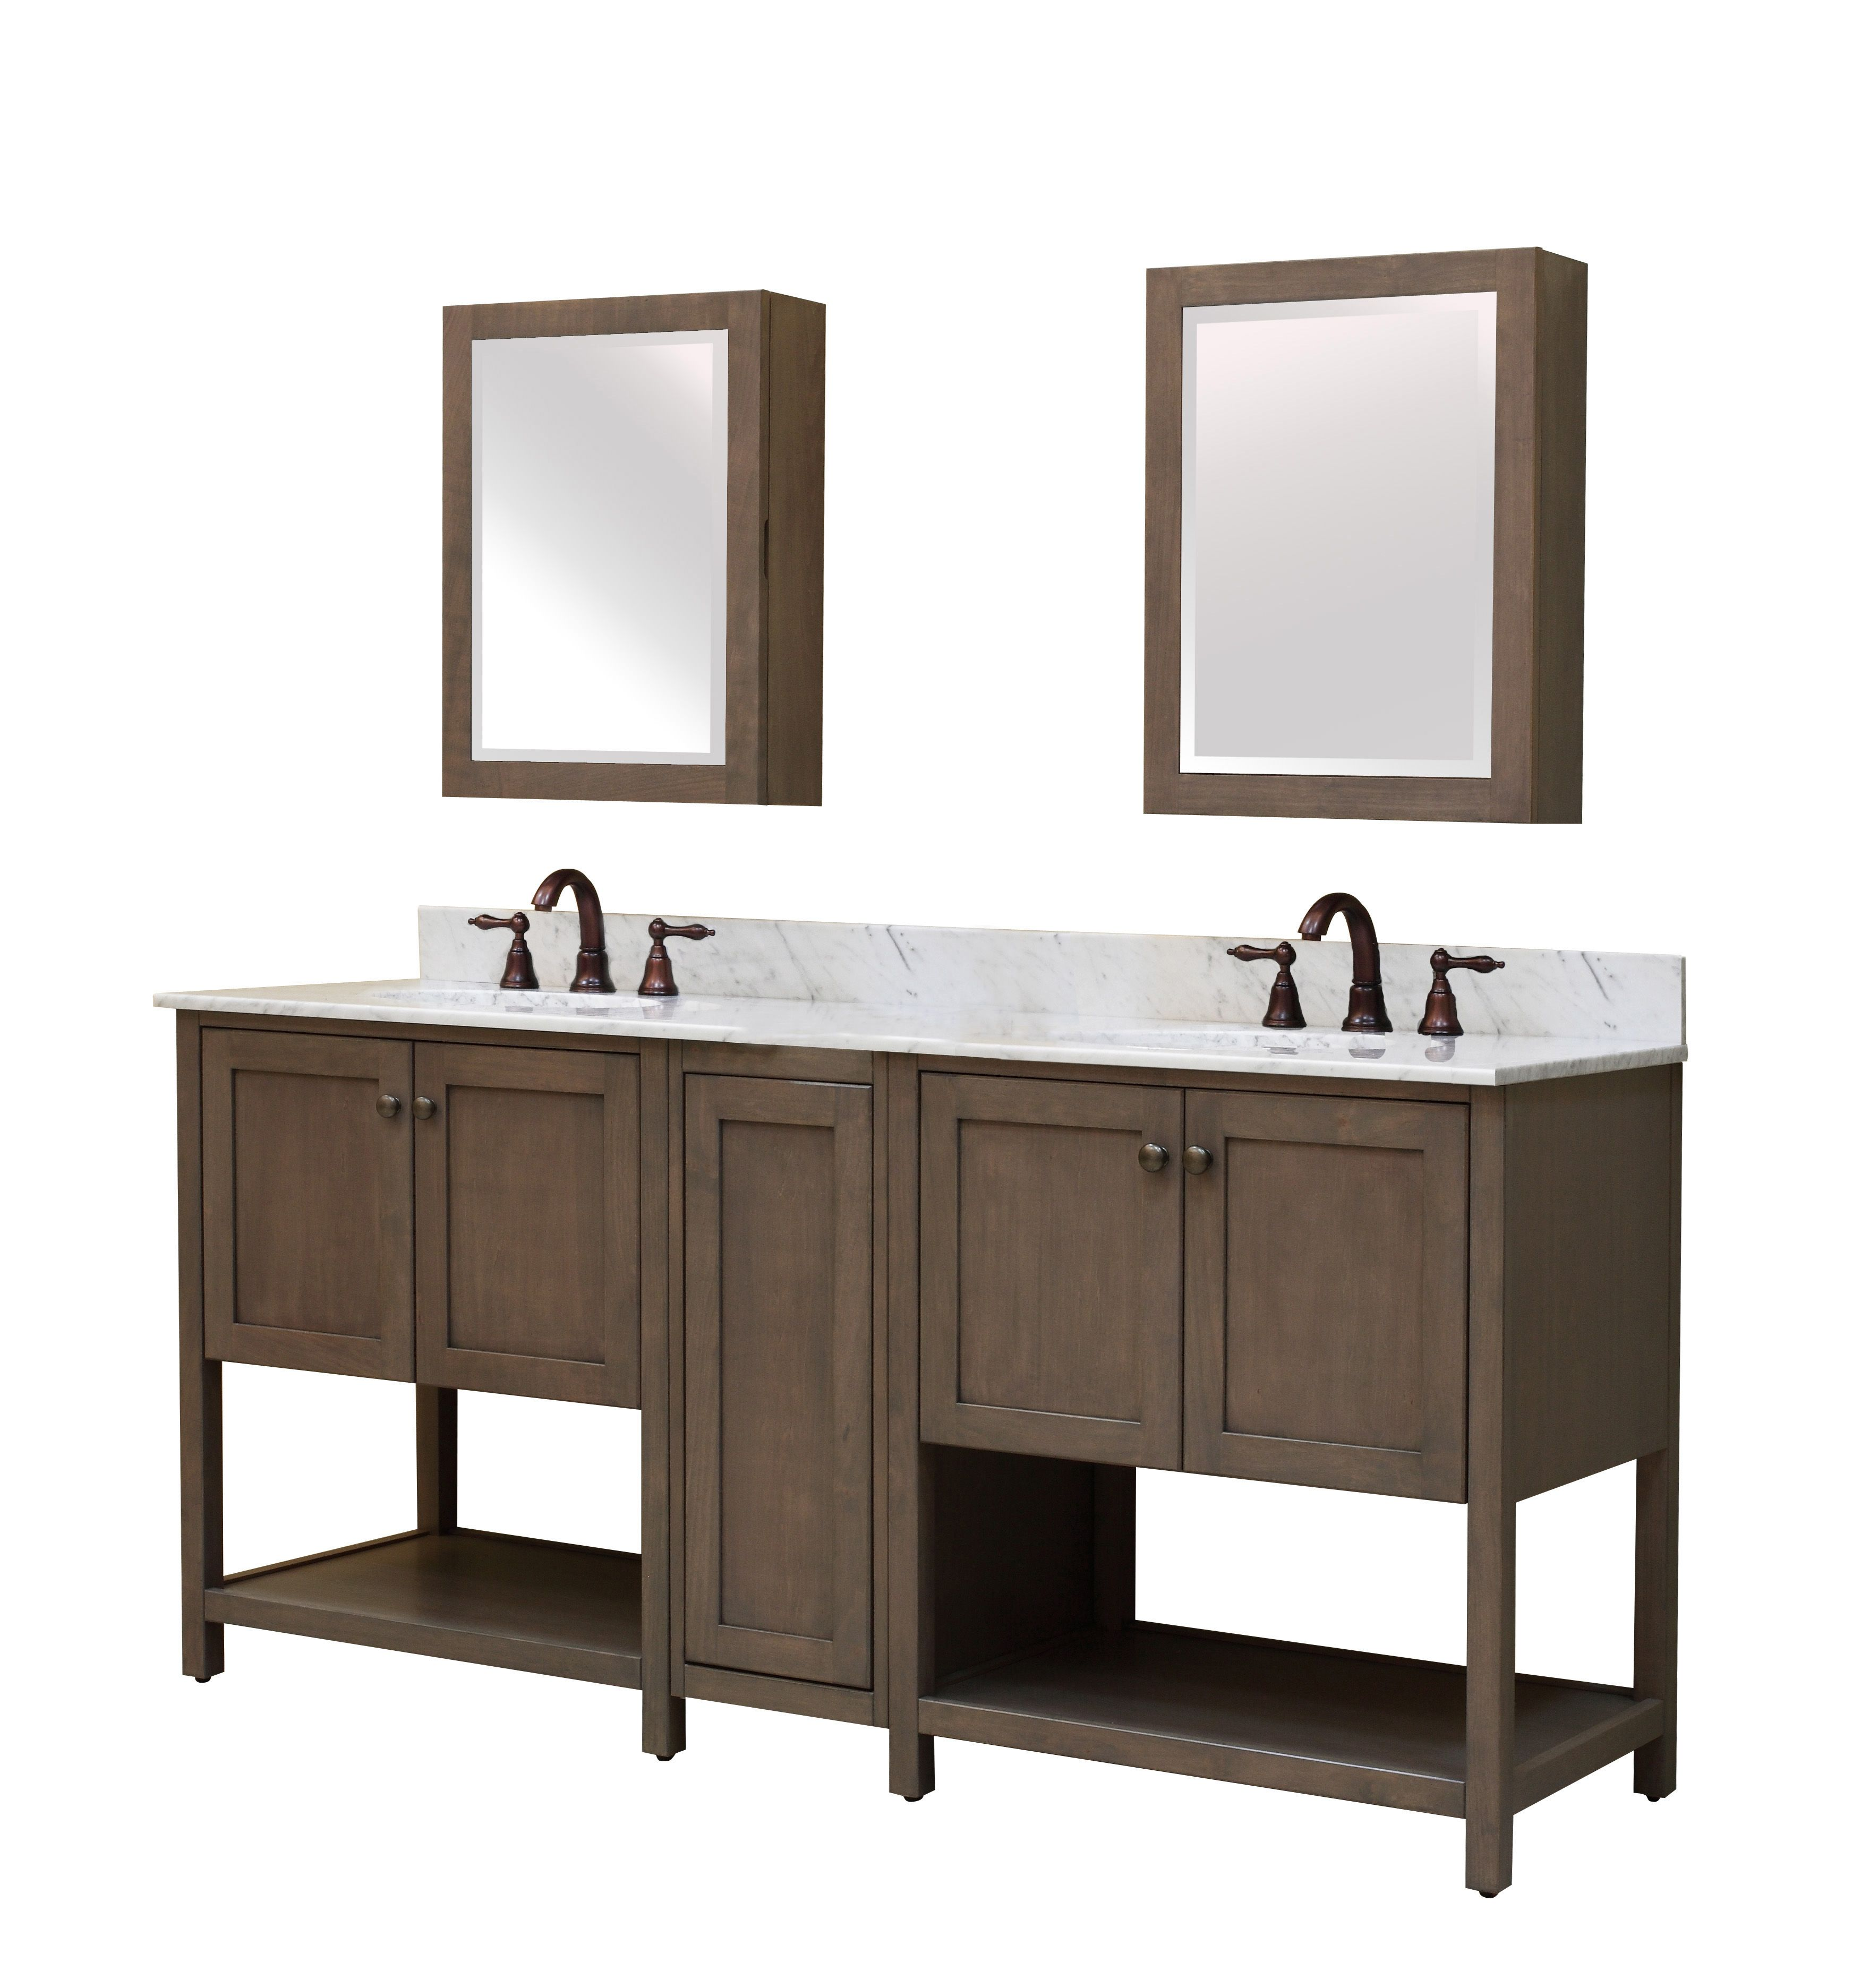 Sunnywood Kitchen Cabinets: NEW! The Aiden Modular Bath Vanity Collection From Sunny